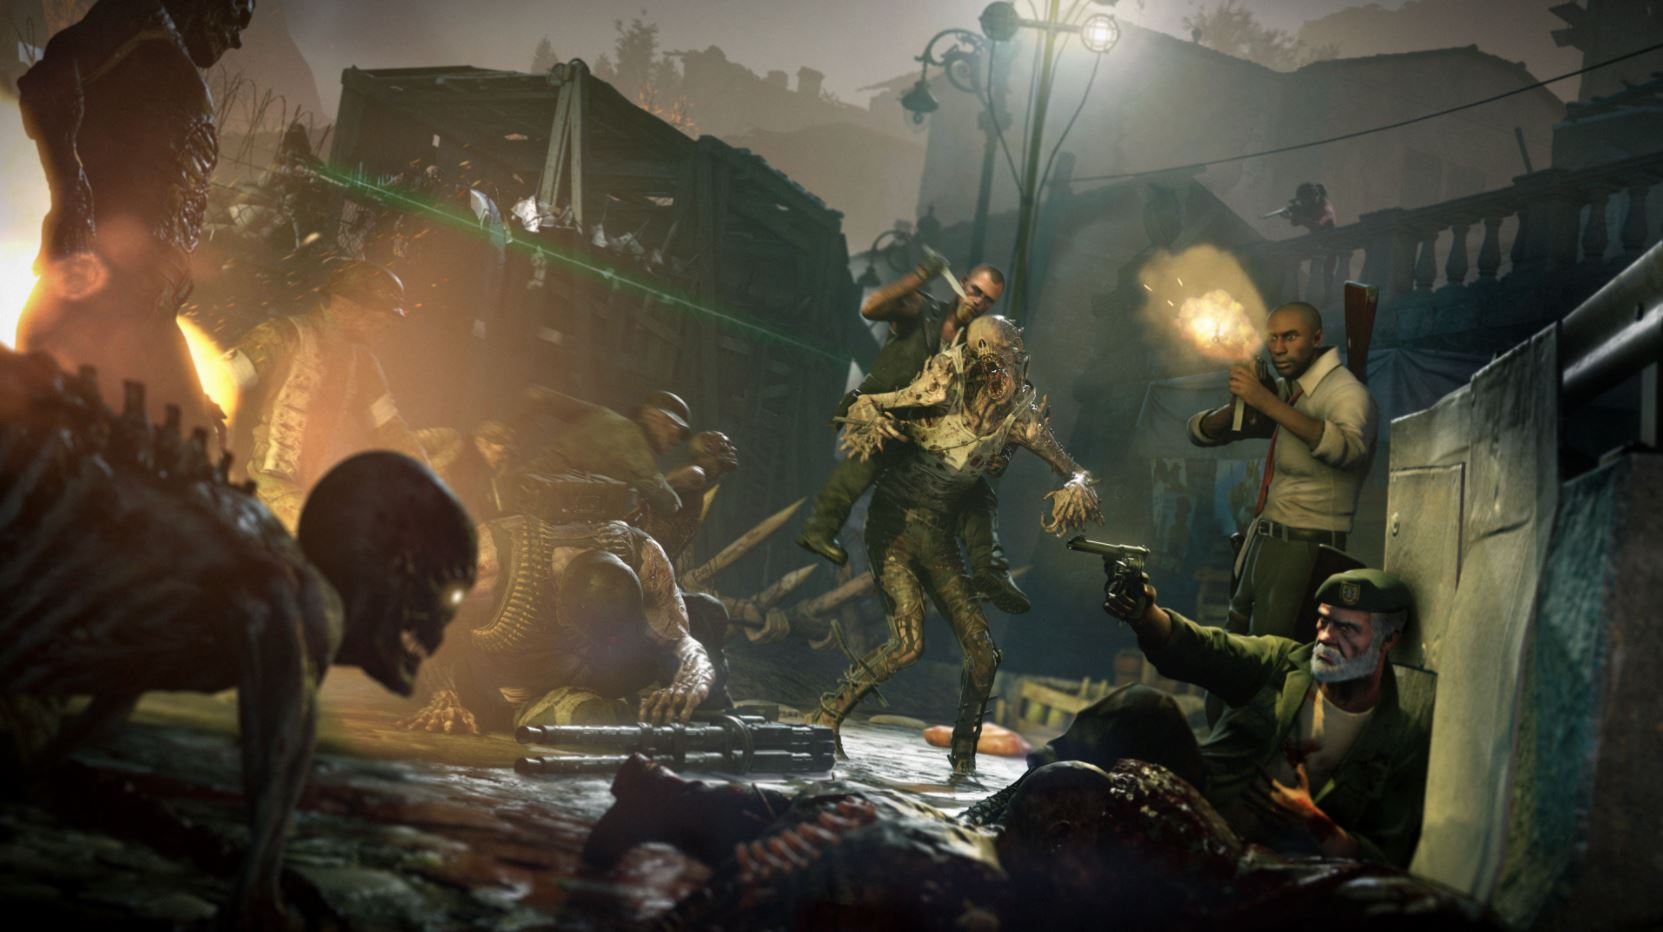 zombie-army-4s-new-dlc-is-out-now-and-brings-left-4-deads-characters-to-the-universe